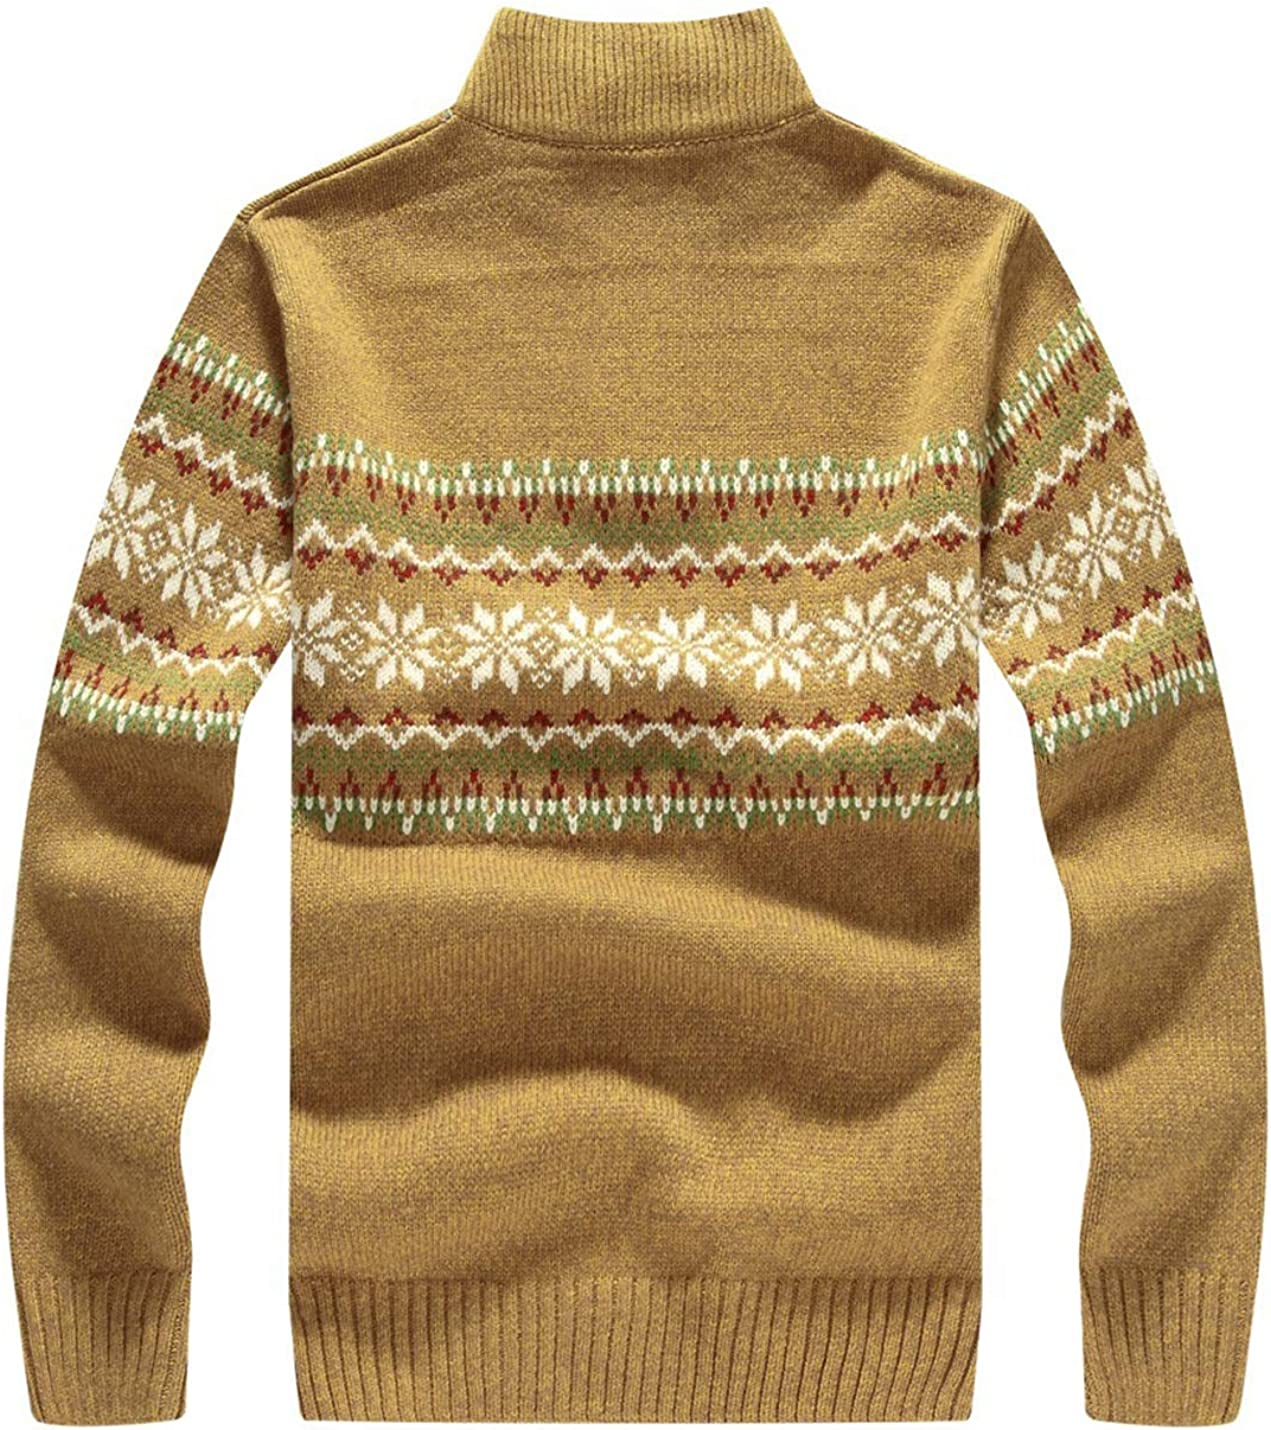 Lentta Mens Casual V-Neck Color Block Twisted Stripe Knitted Pullovers Sweater